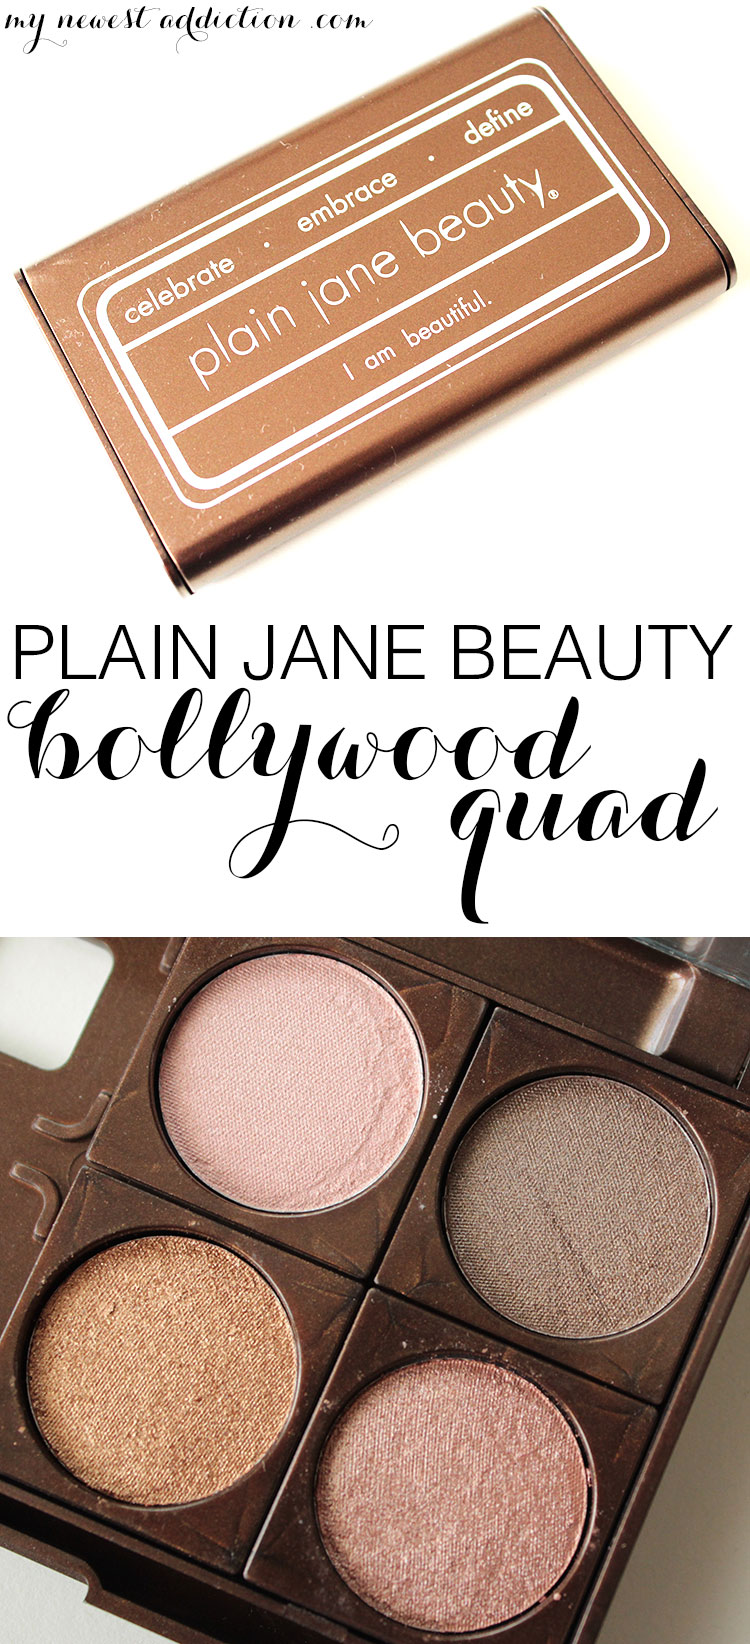 Plain Jane Beauty Bollywood Quad